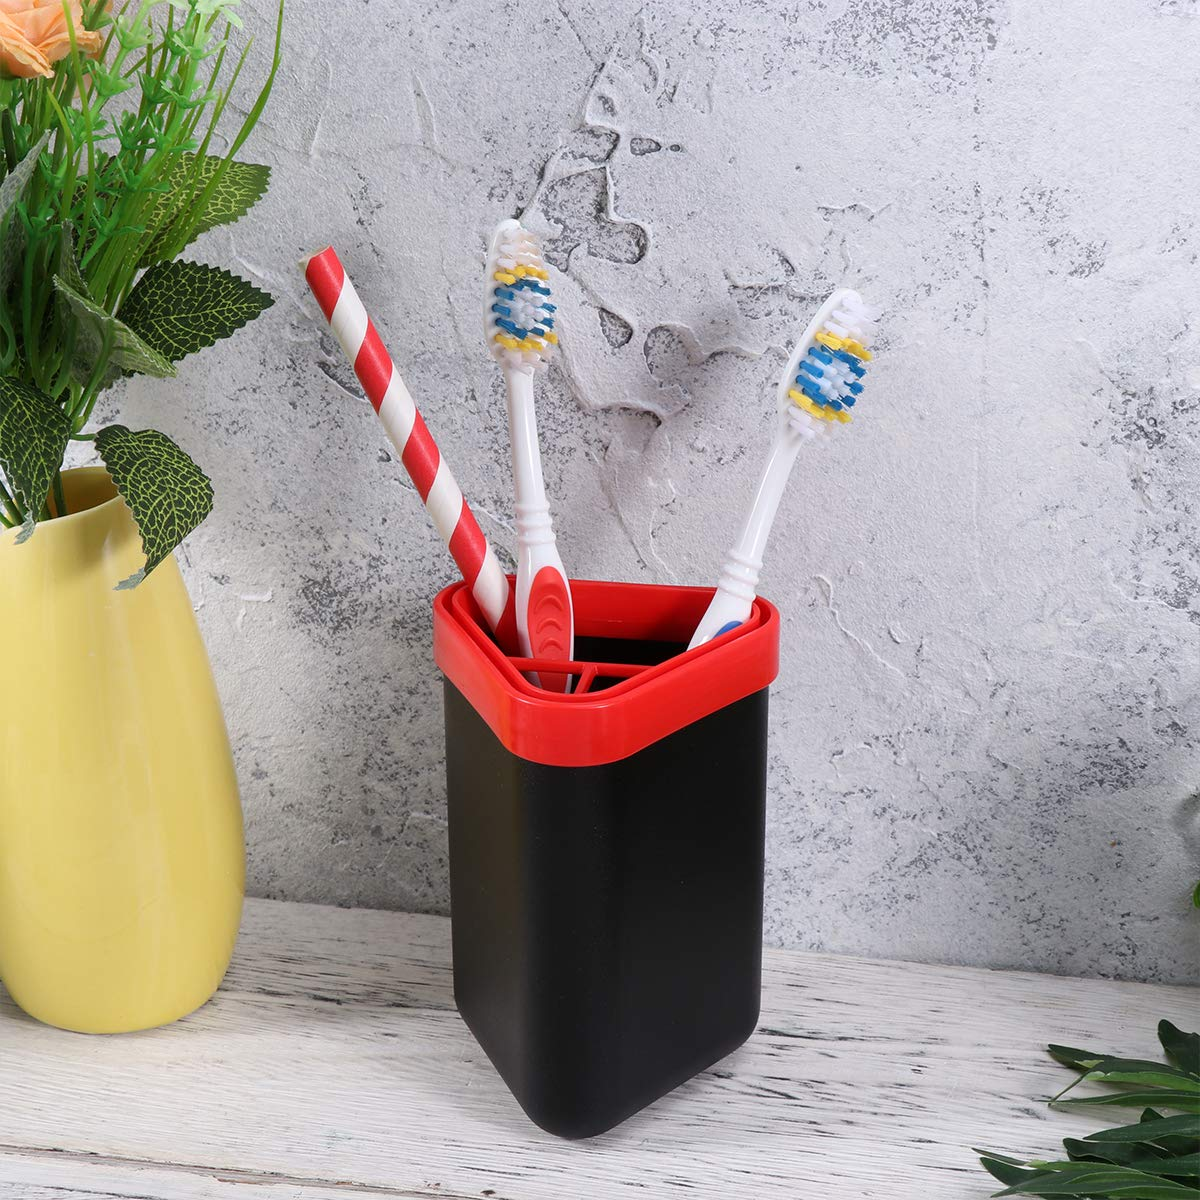 Travel Toothbrush Carrier And Case Portable Business Trips Wash Cup Holder For